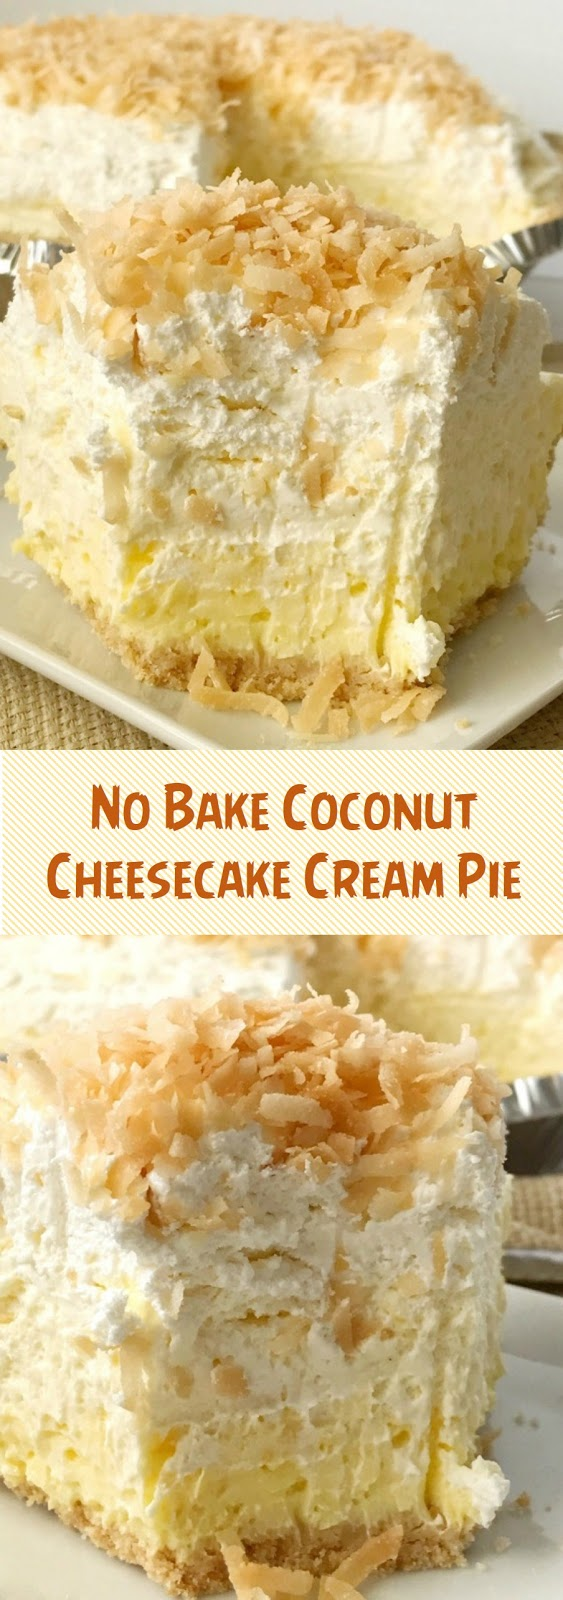 No Bake Coconut Cheesecake Cream Pie